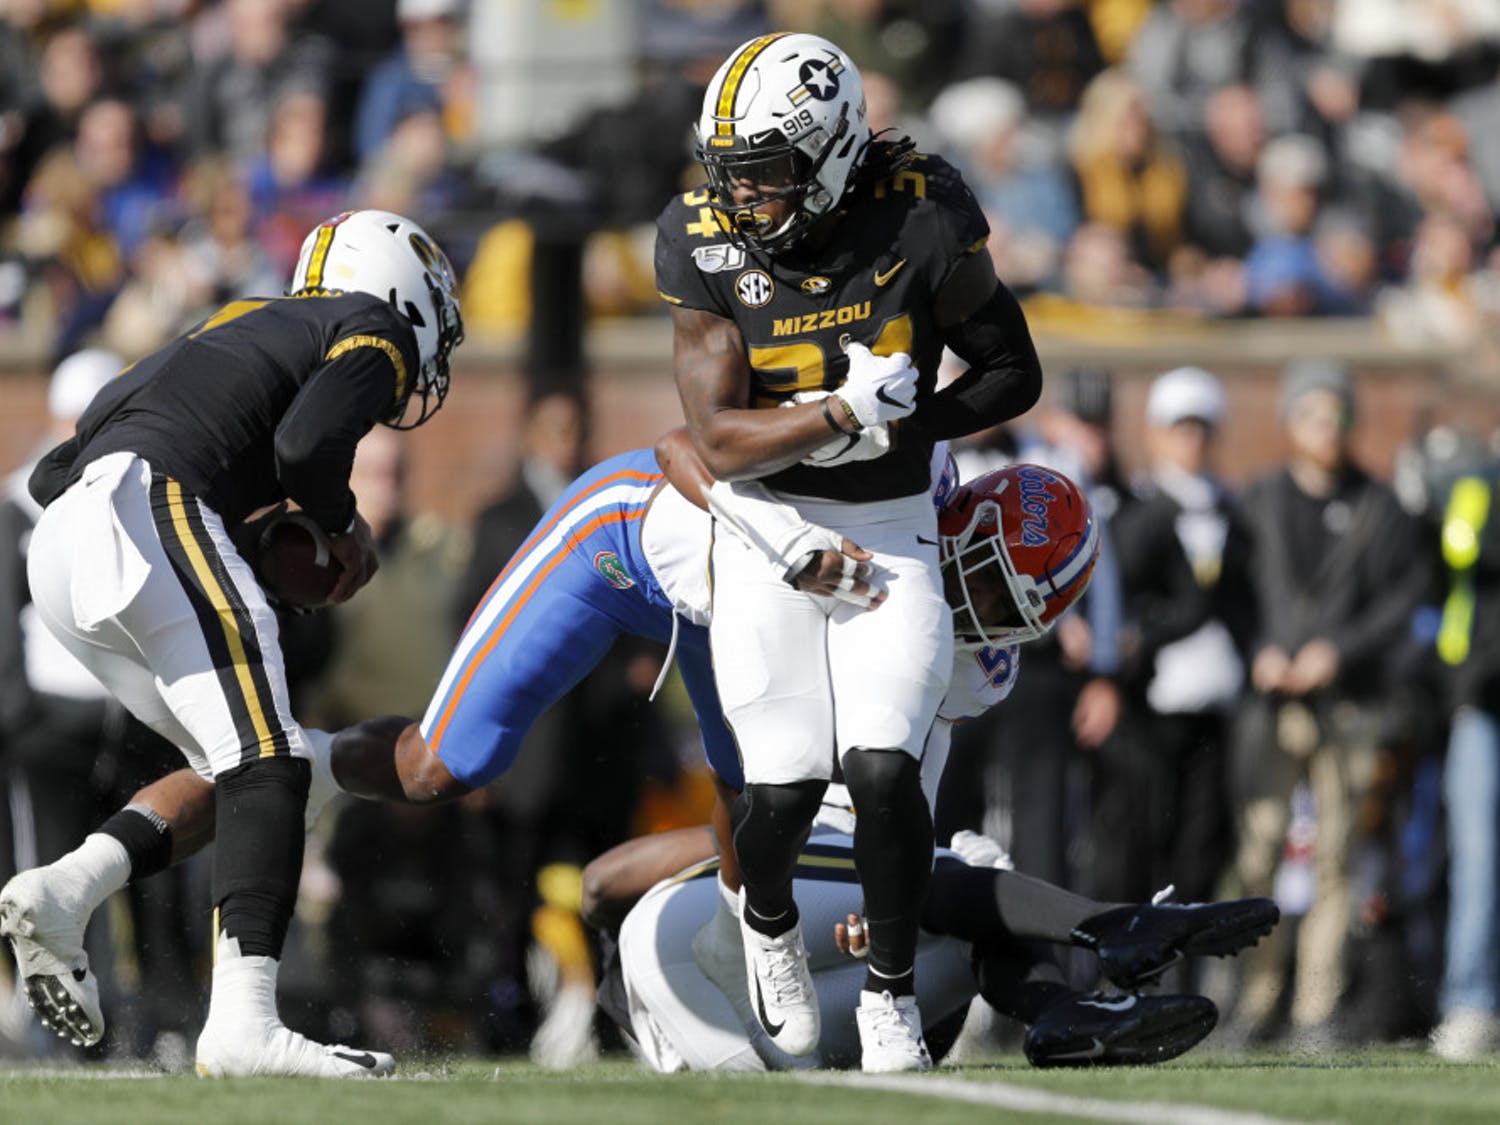 Missouri running back Larry Rountree III, front, struggles for yardage before being pulled down by Florida linebacker Jonathan Greenard during the first half of an NCAA college football game Saturday, Nov. 16, 2019, in Columbia, Mo. (AP Photo/Jeff Roberson)